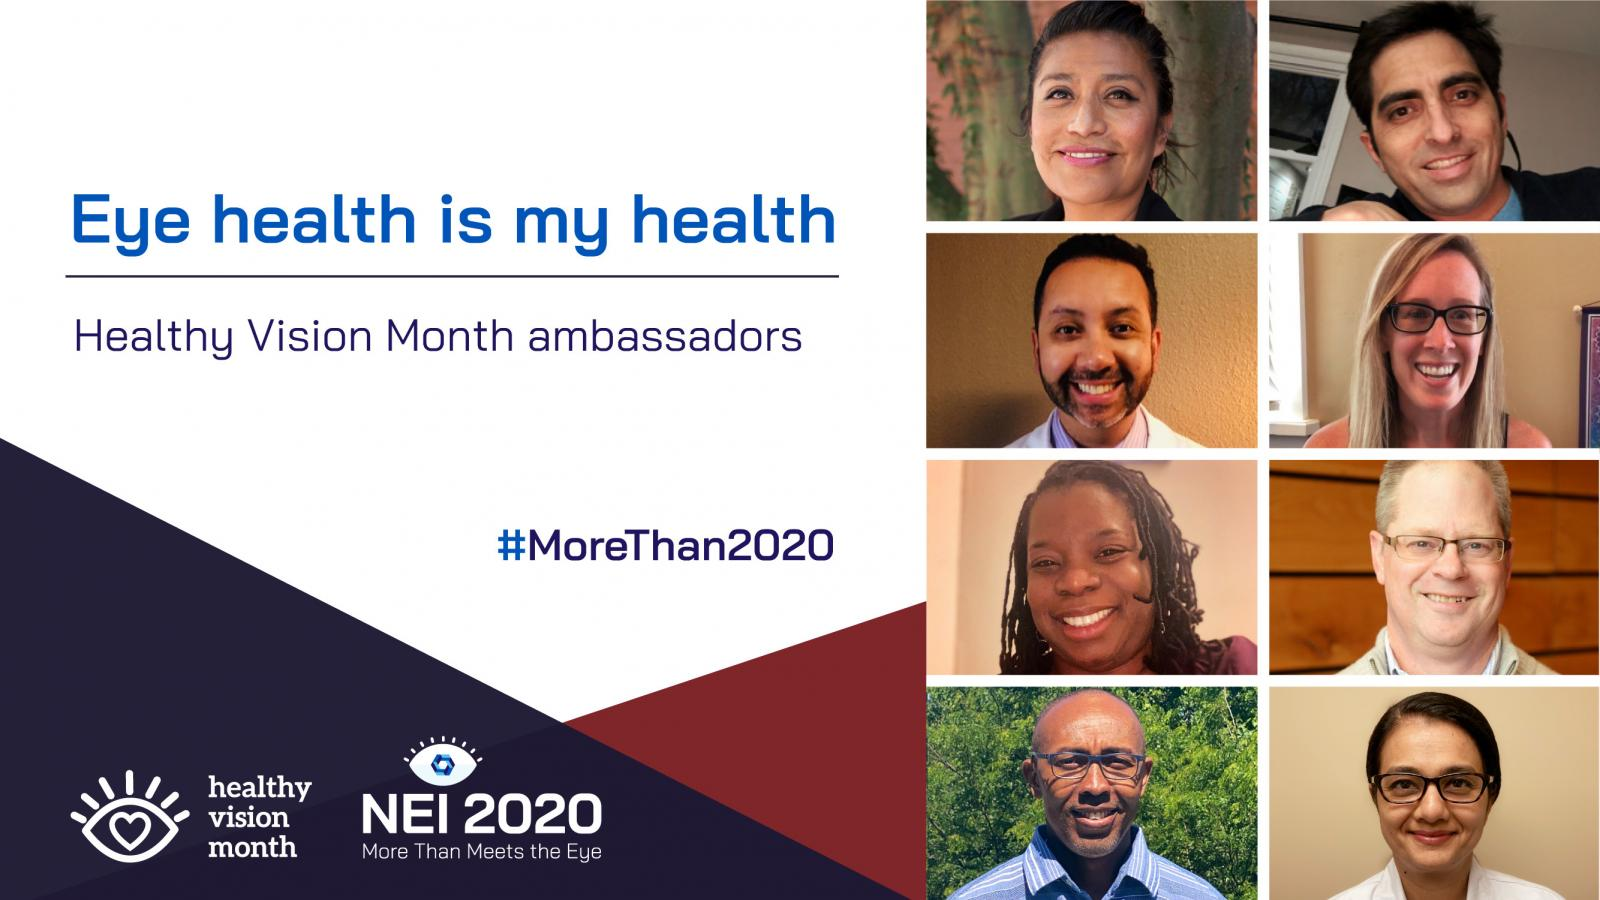 Eye Health Is My Health promotional graphic with a collage of NEI's Healthy Vision Month ambassadors, who are a diverse group of people.